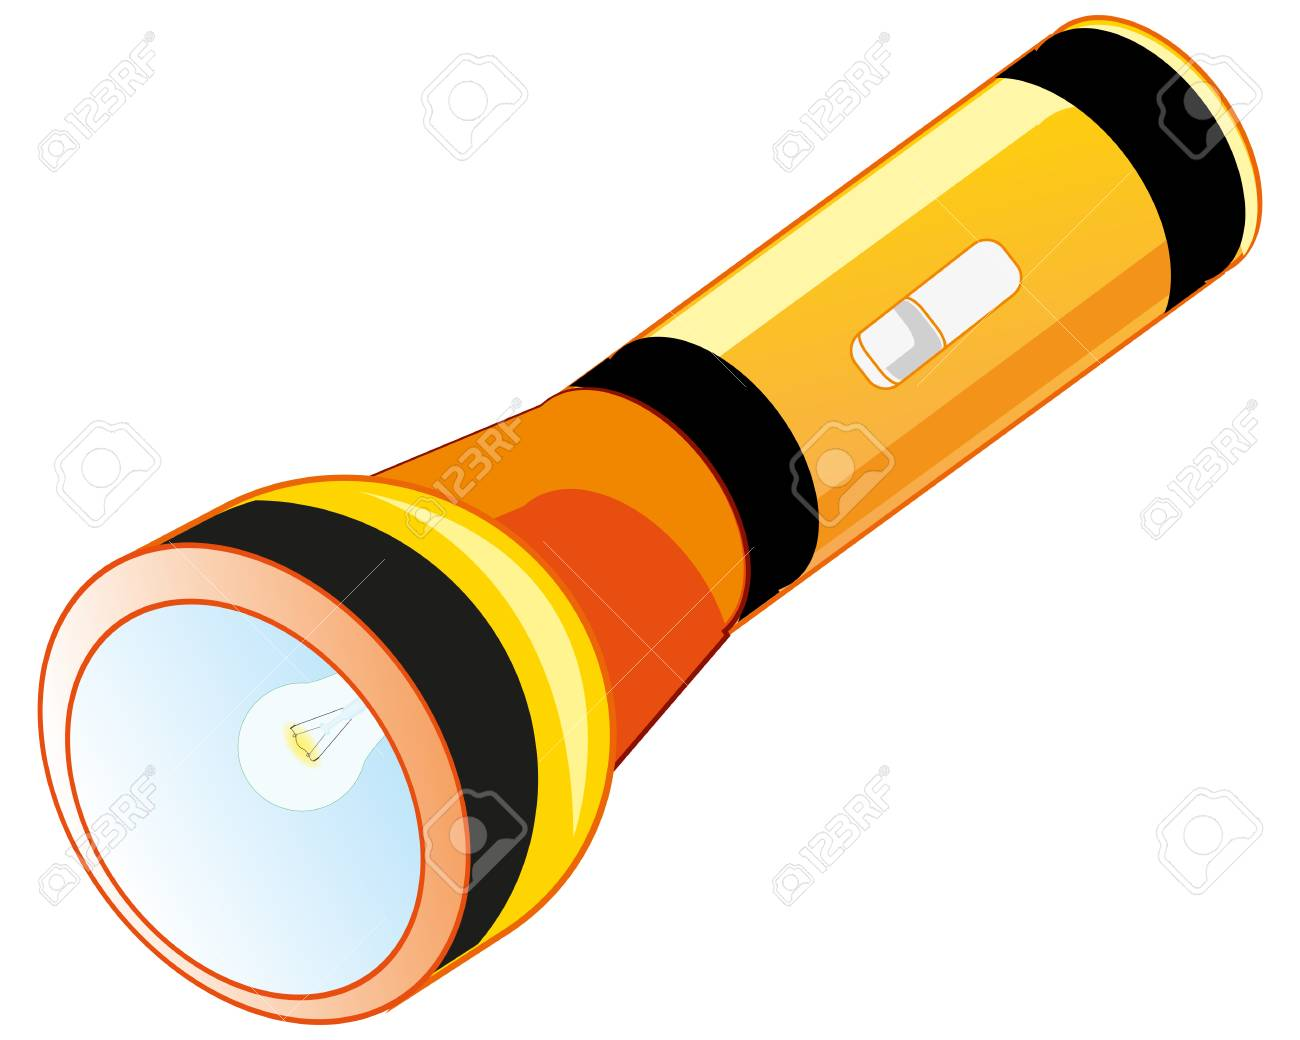 Flash-light On Battery Royalty Free Cliparts, Vectors, And Stock ... for Battery Torch Clipart  545xkb